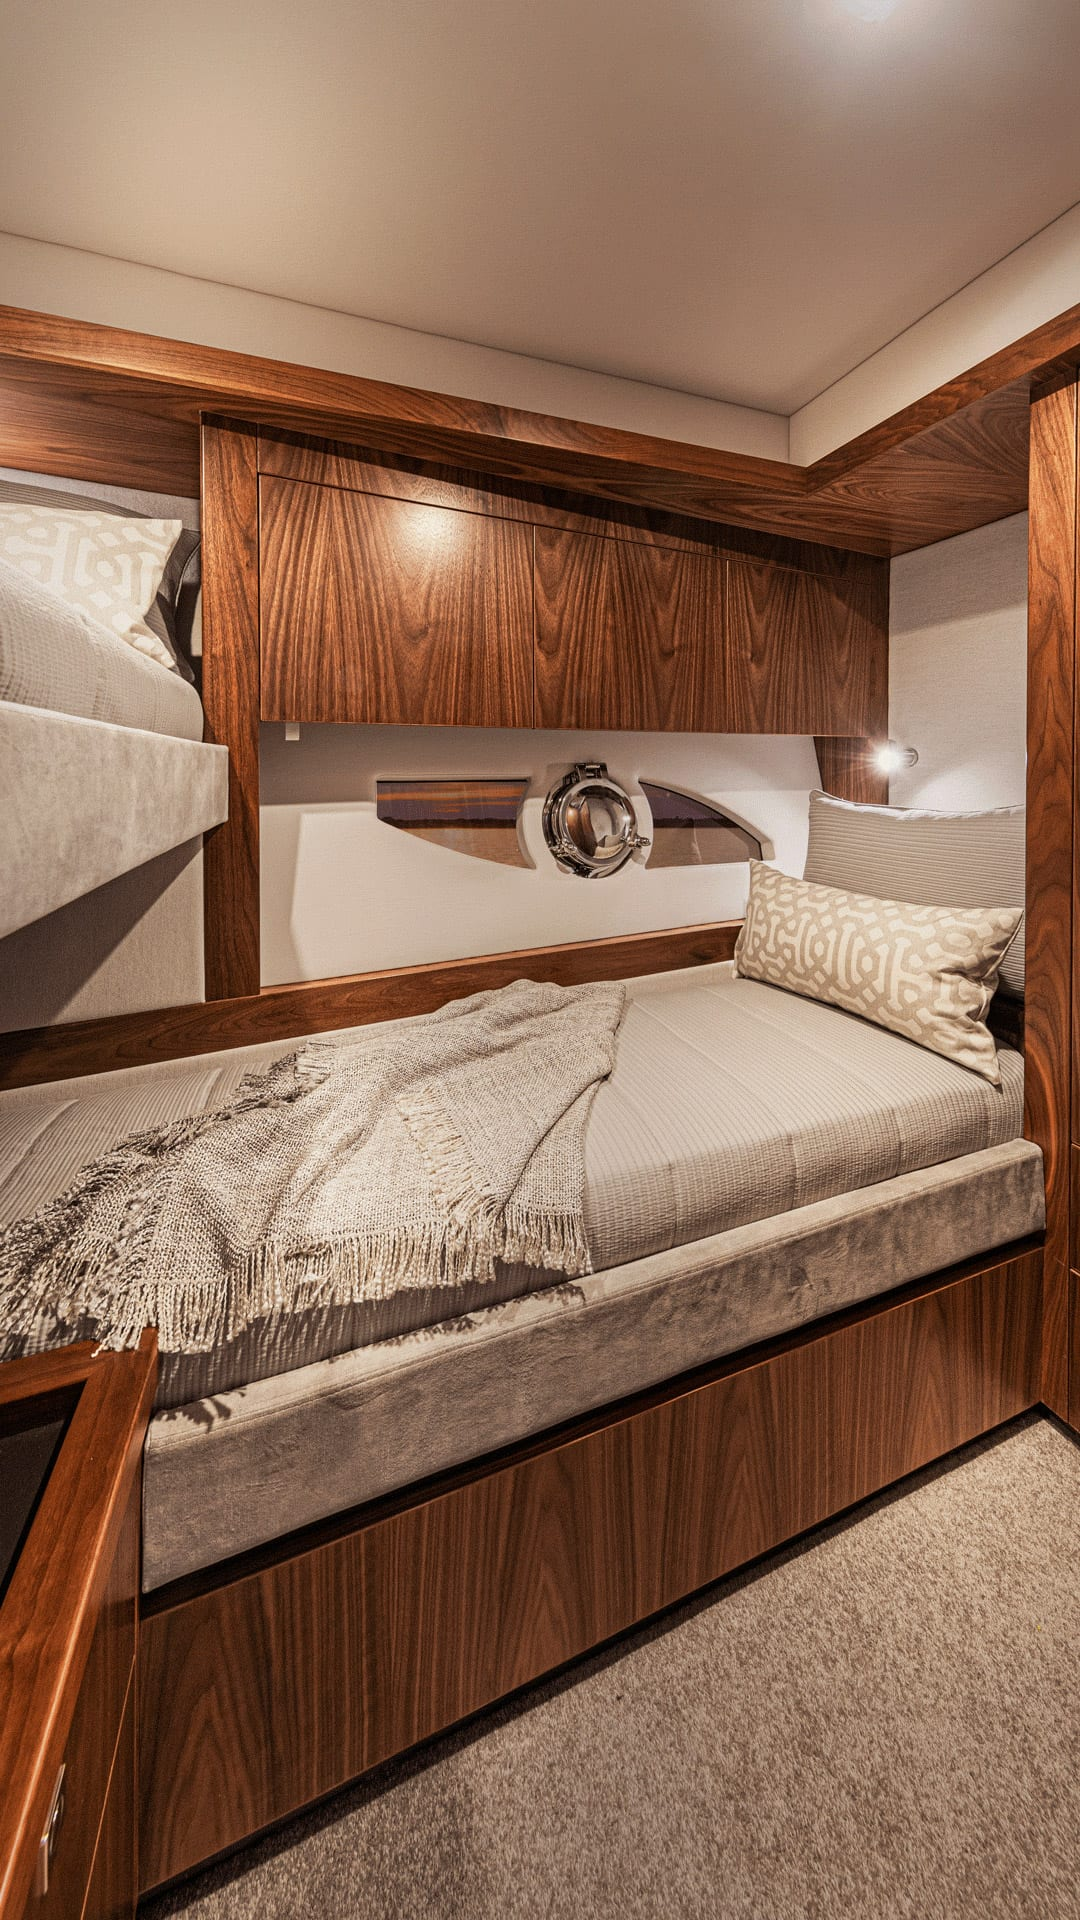 Riviera 68 Sports Motor Yacht Starboard Stateroom 02 – Satin Walnut Timber Finish